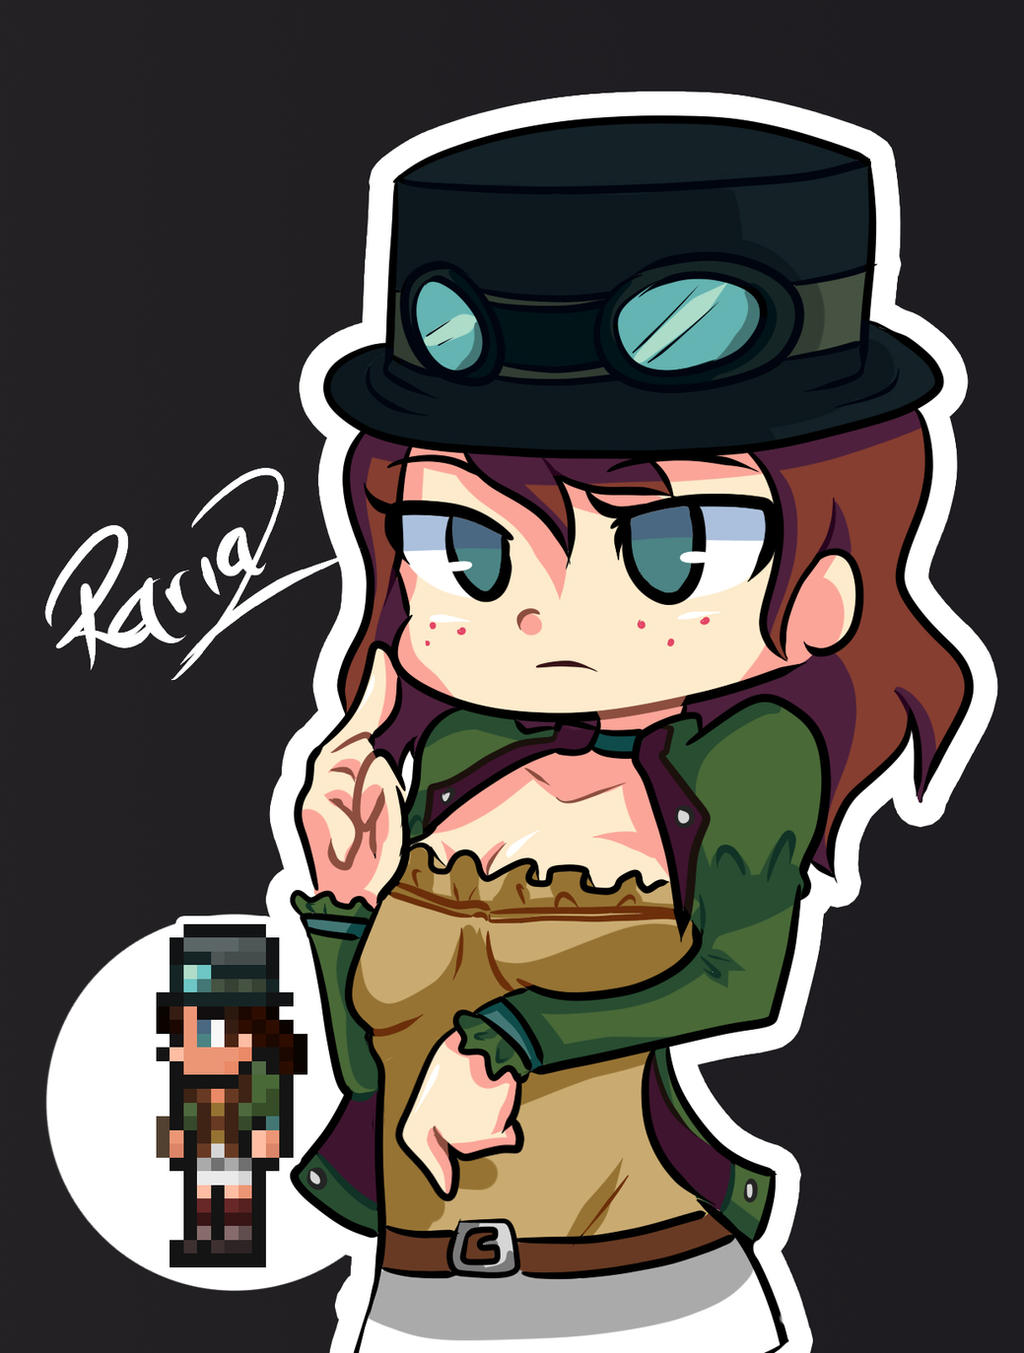 Anime Characters In Terraria : Steampunker terraria jaltoid style by rariaz on deviantart